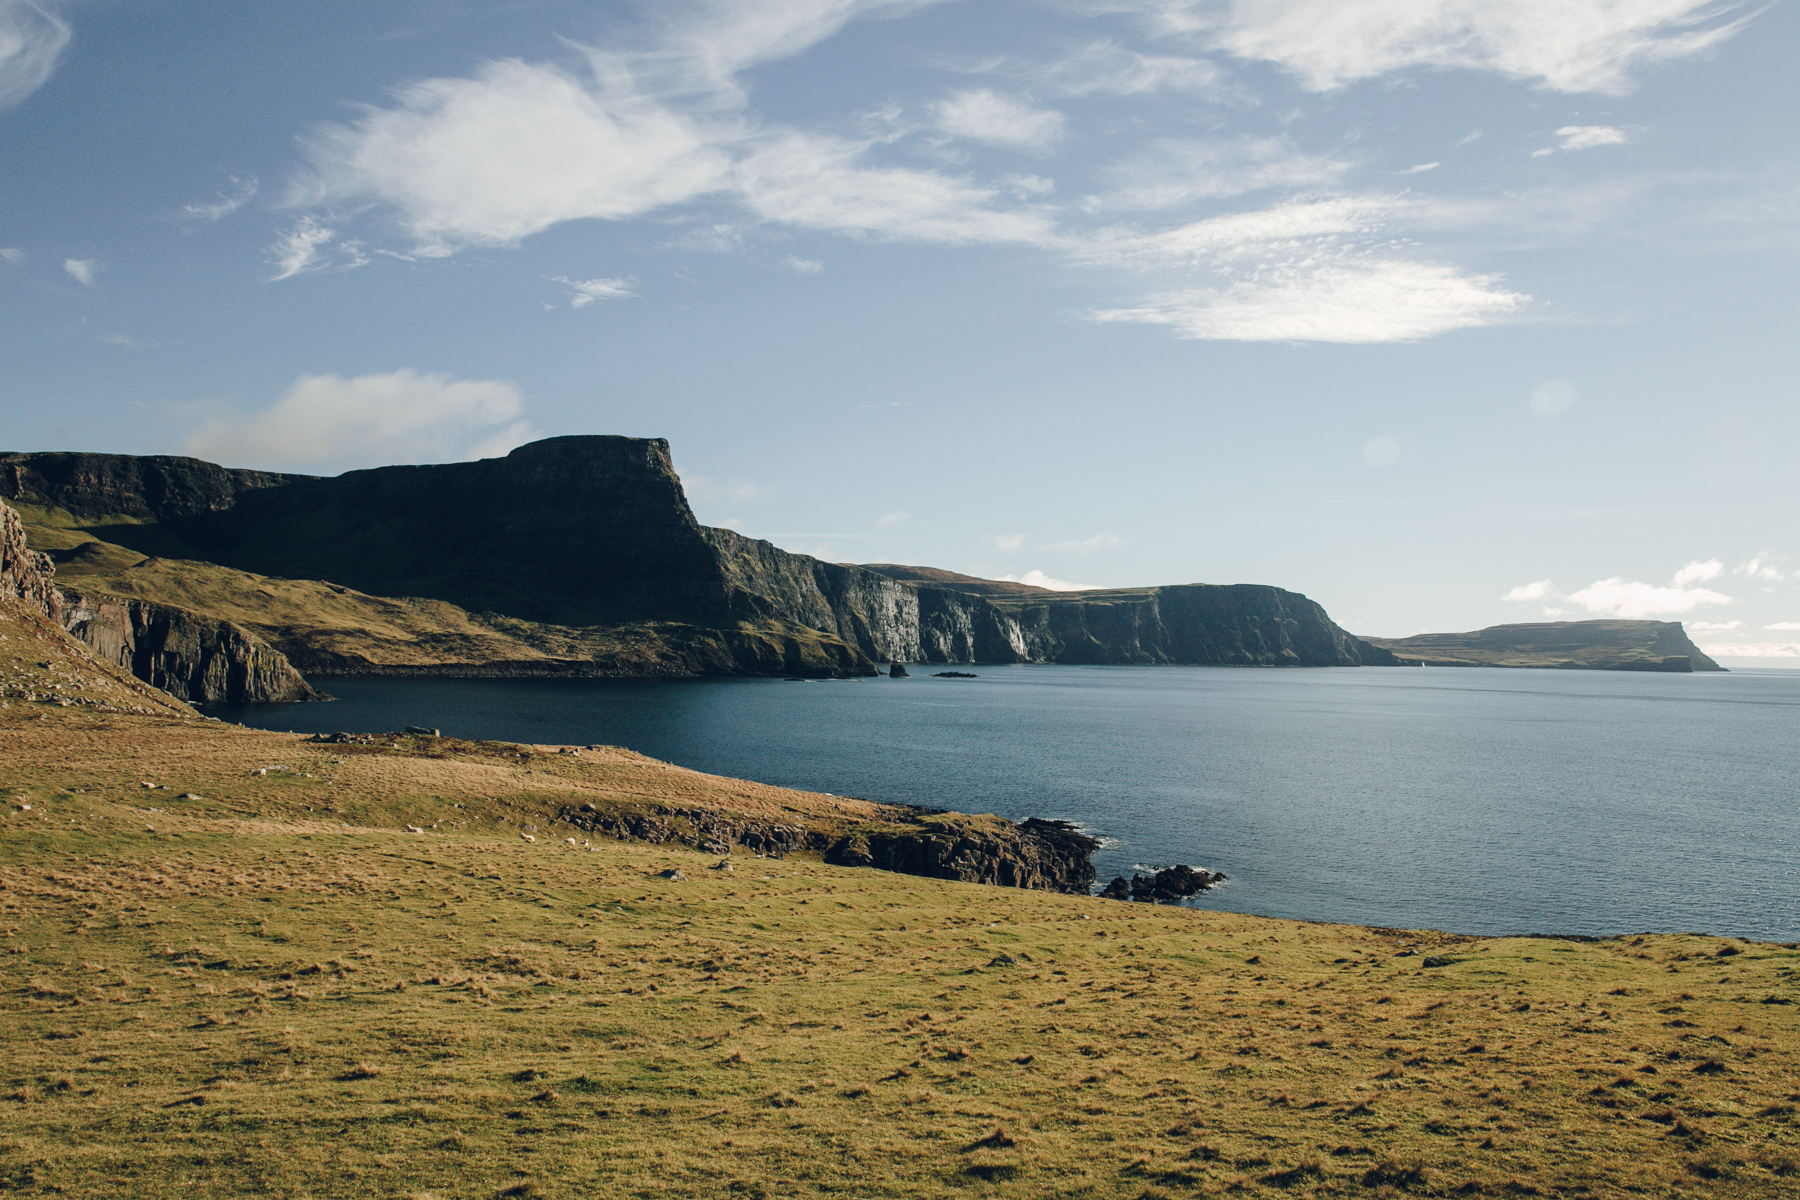 The view from Neist Point Lighthouse on the Isle of Skye in Scotland.